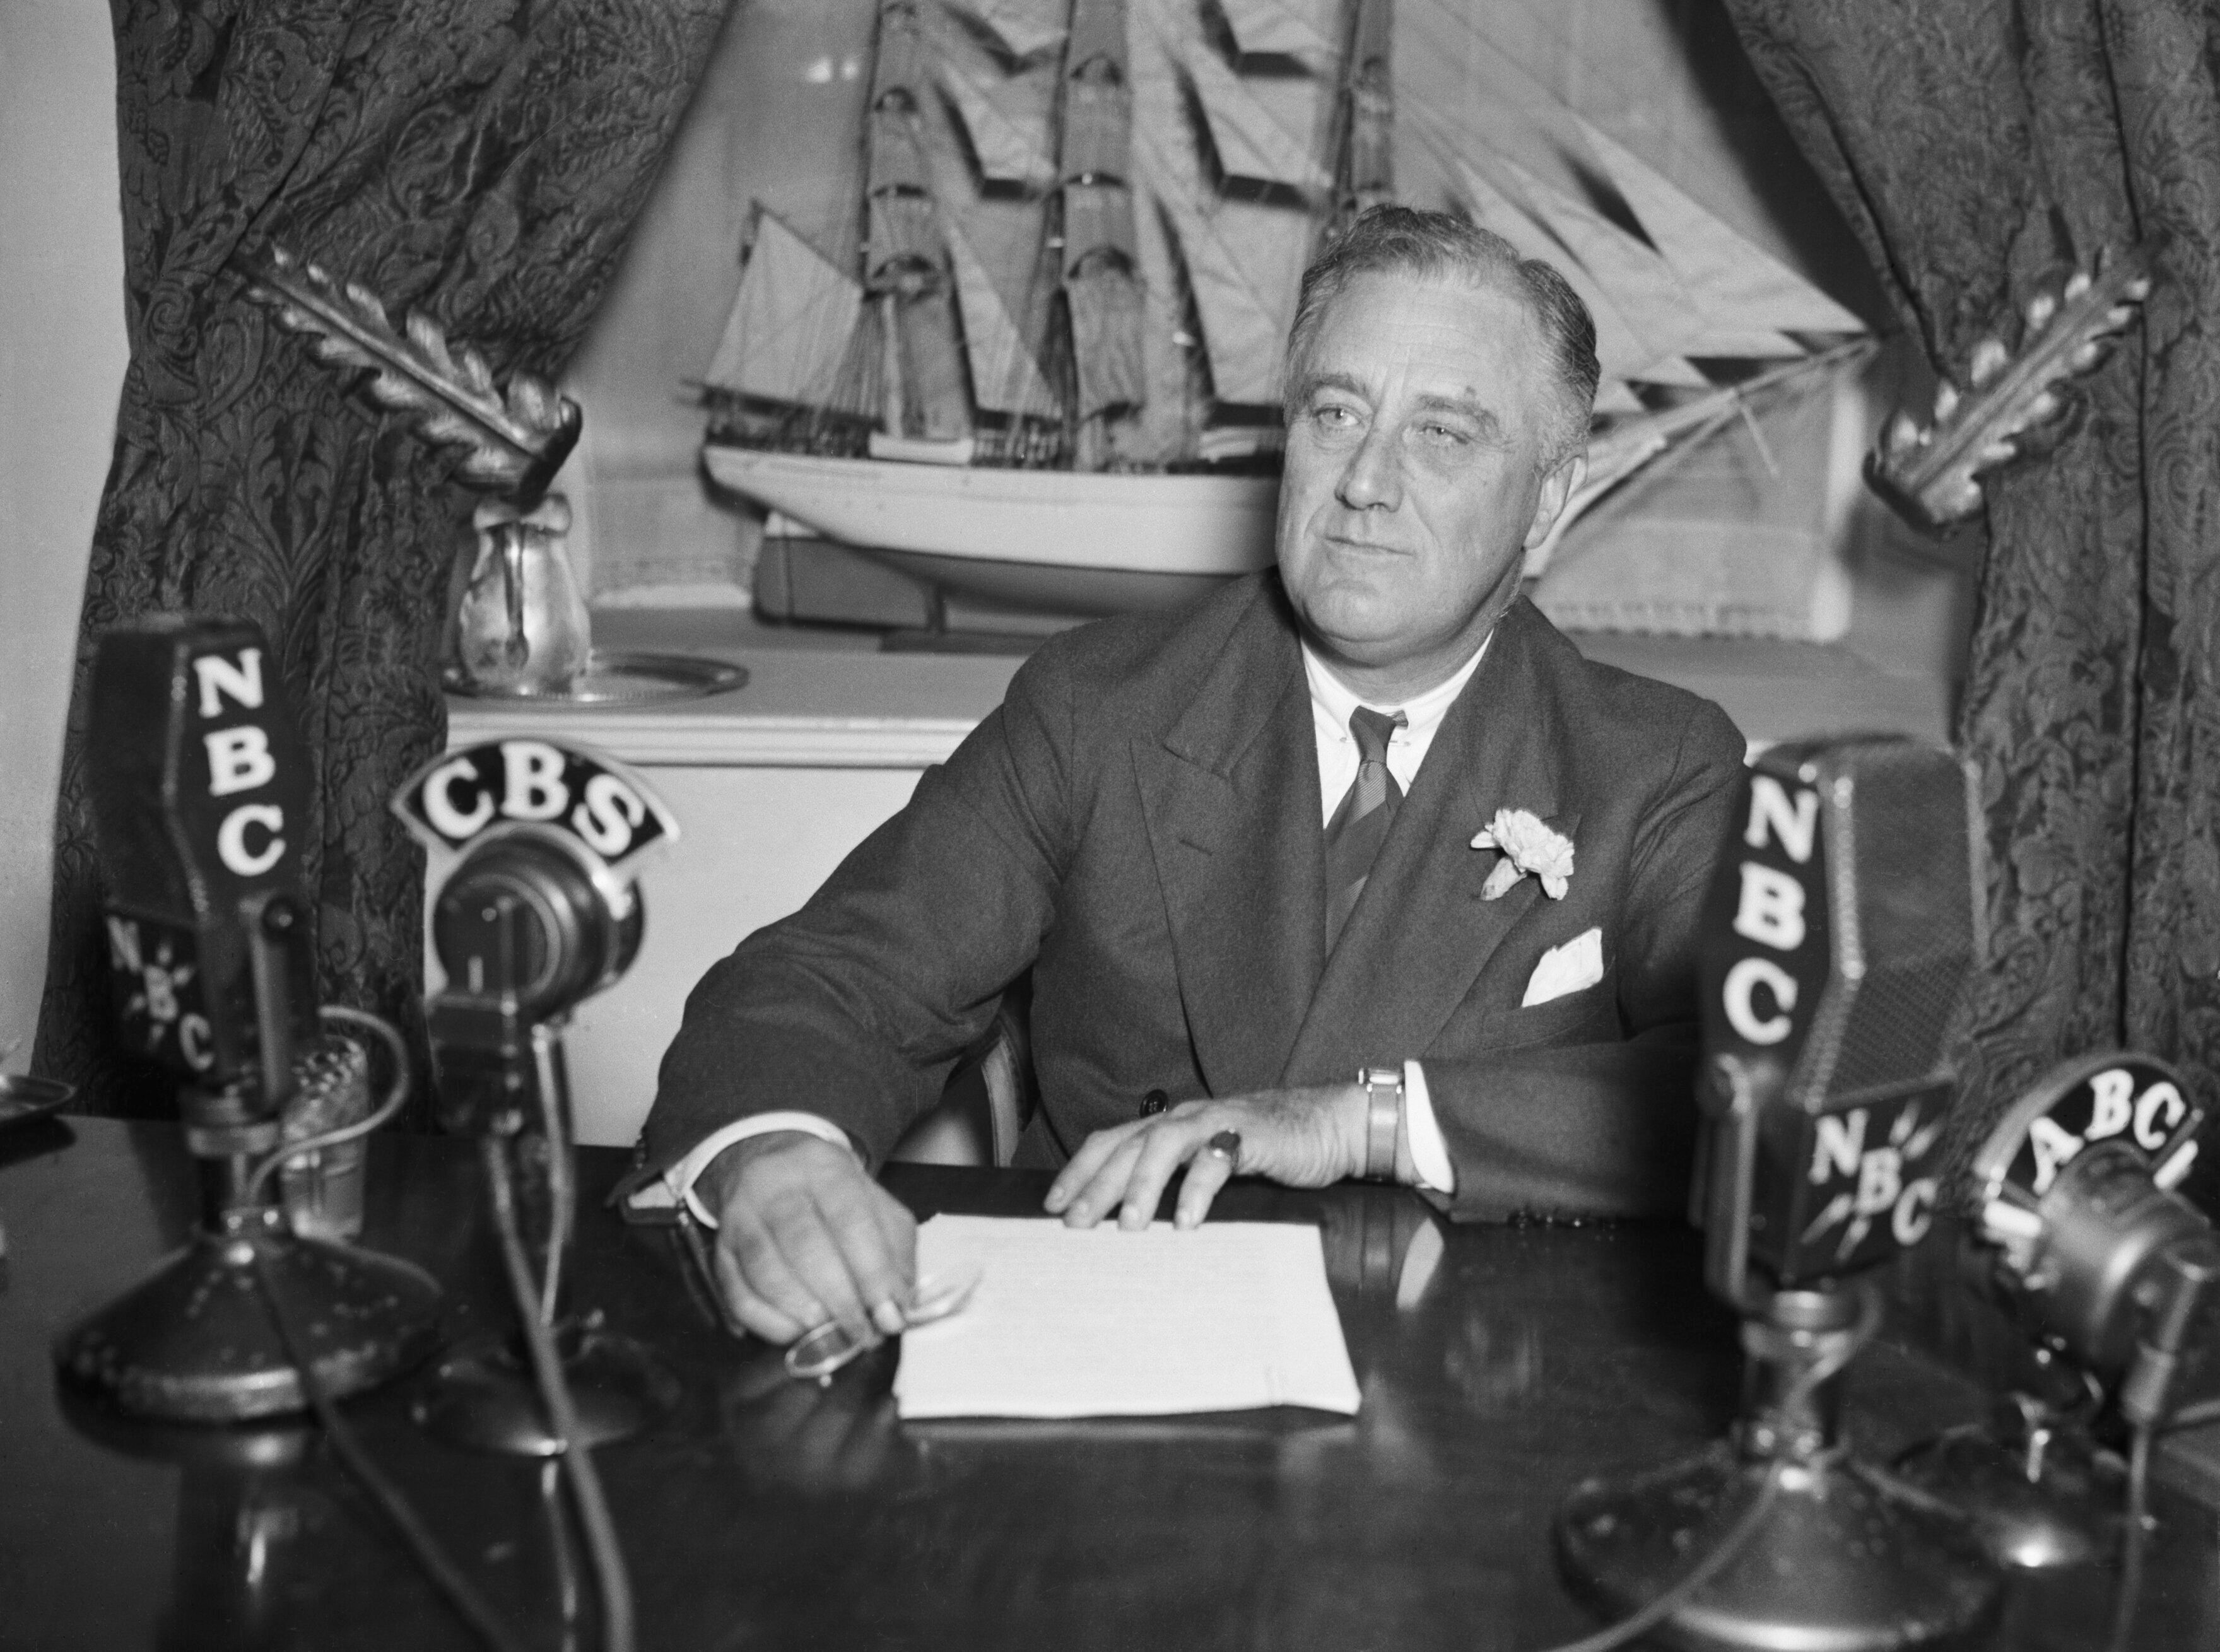 """When running for president, Franklin Roosevelt called for a """"workable program of reconstruction"""" to enact new """"economic"""